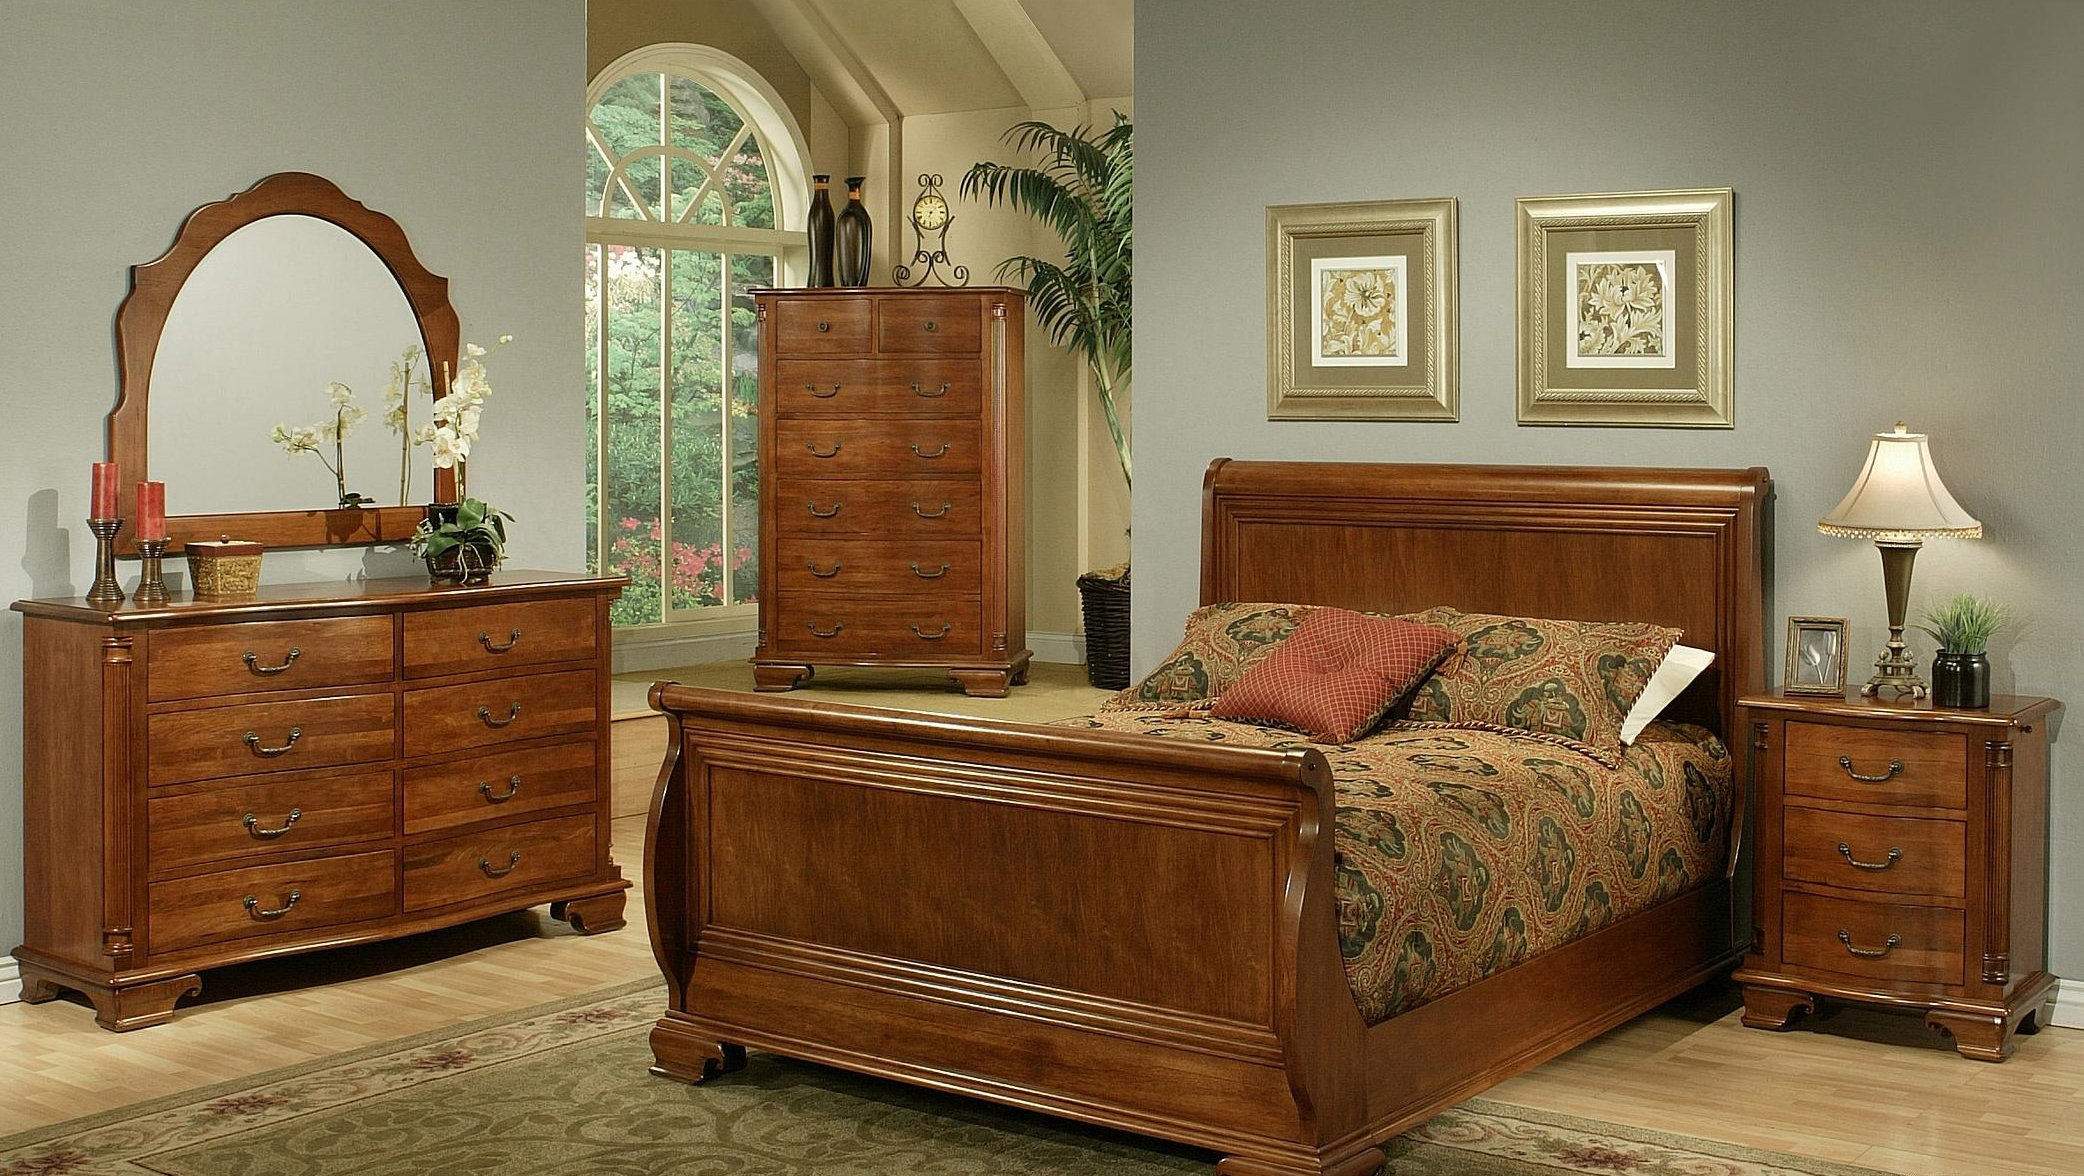 Amanda Home American Heritage Solid Cherry 4-Piece Queen Sleigh Bedroom Set Including Queen Headboard / Footboard, Side Rails, 3 Drawer Nightstand, 8-Drawer Dresser and Dressing Mirror